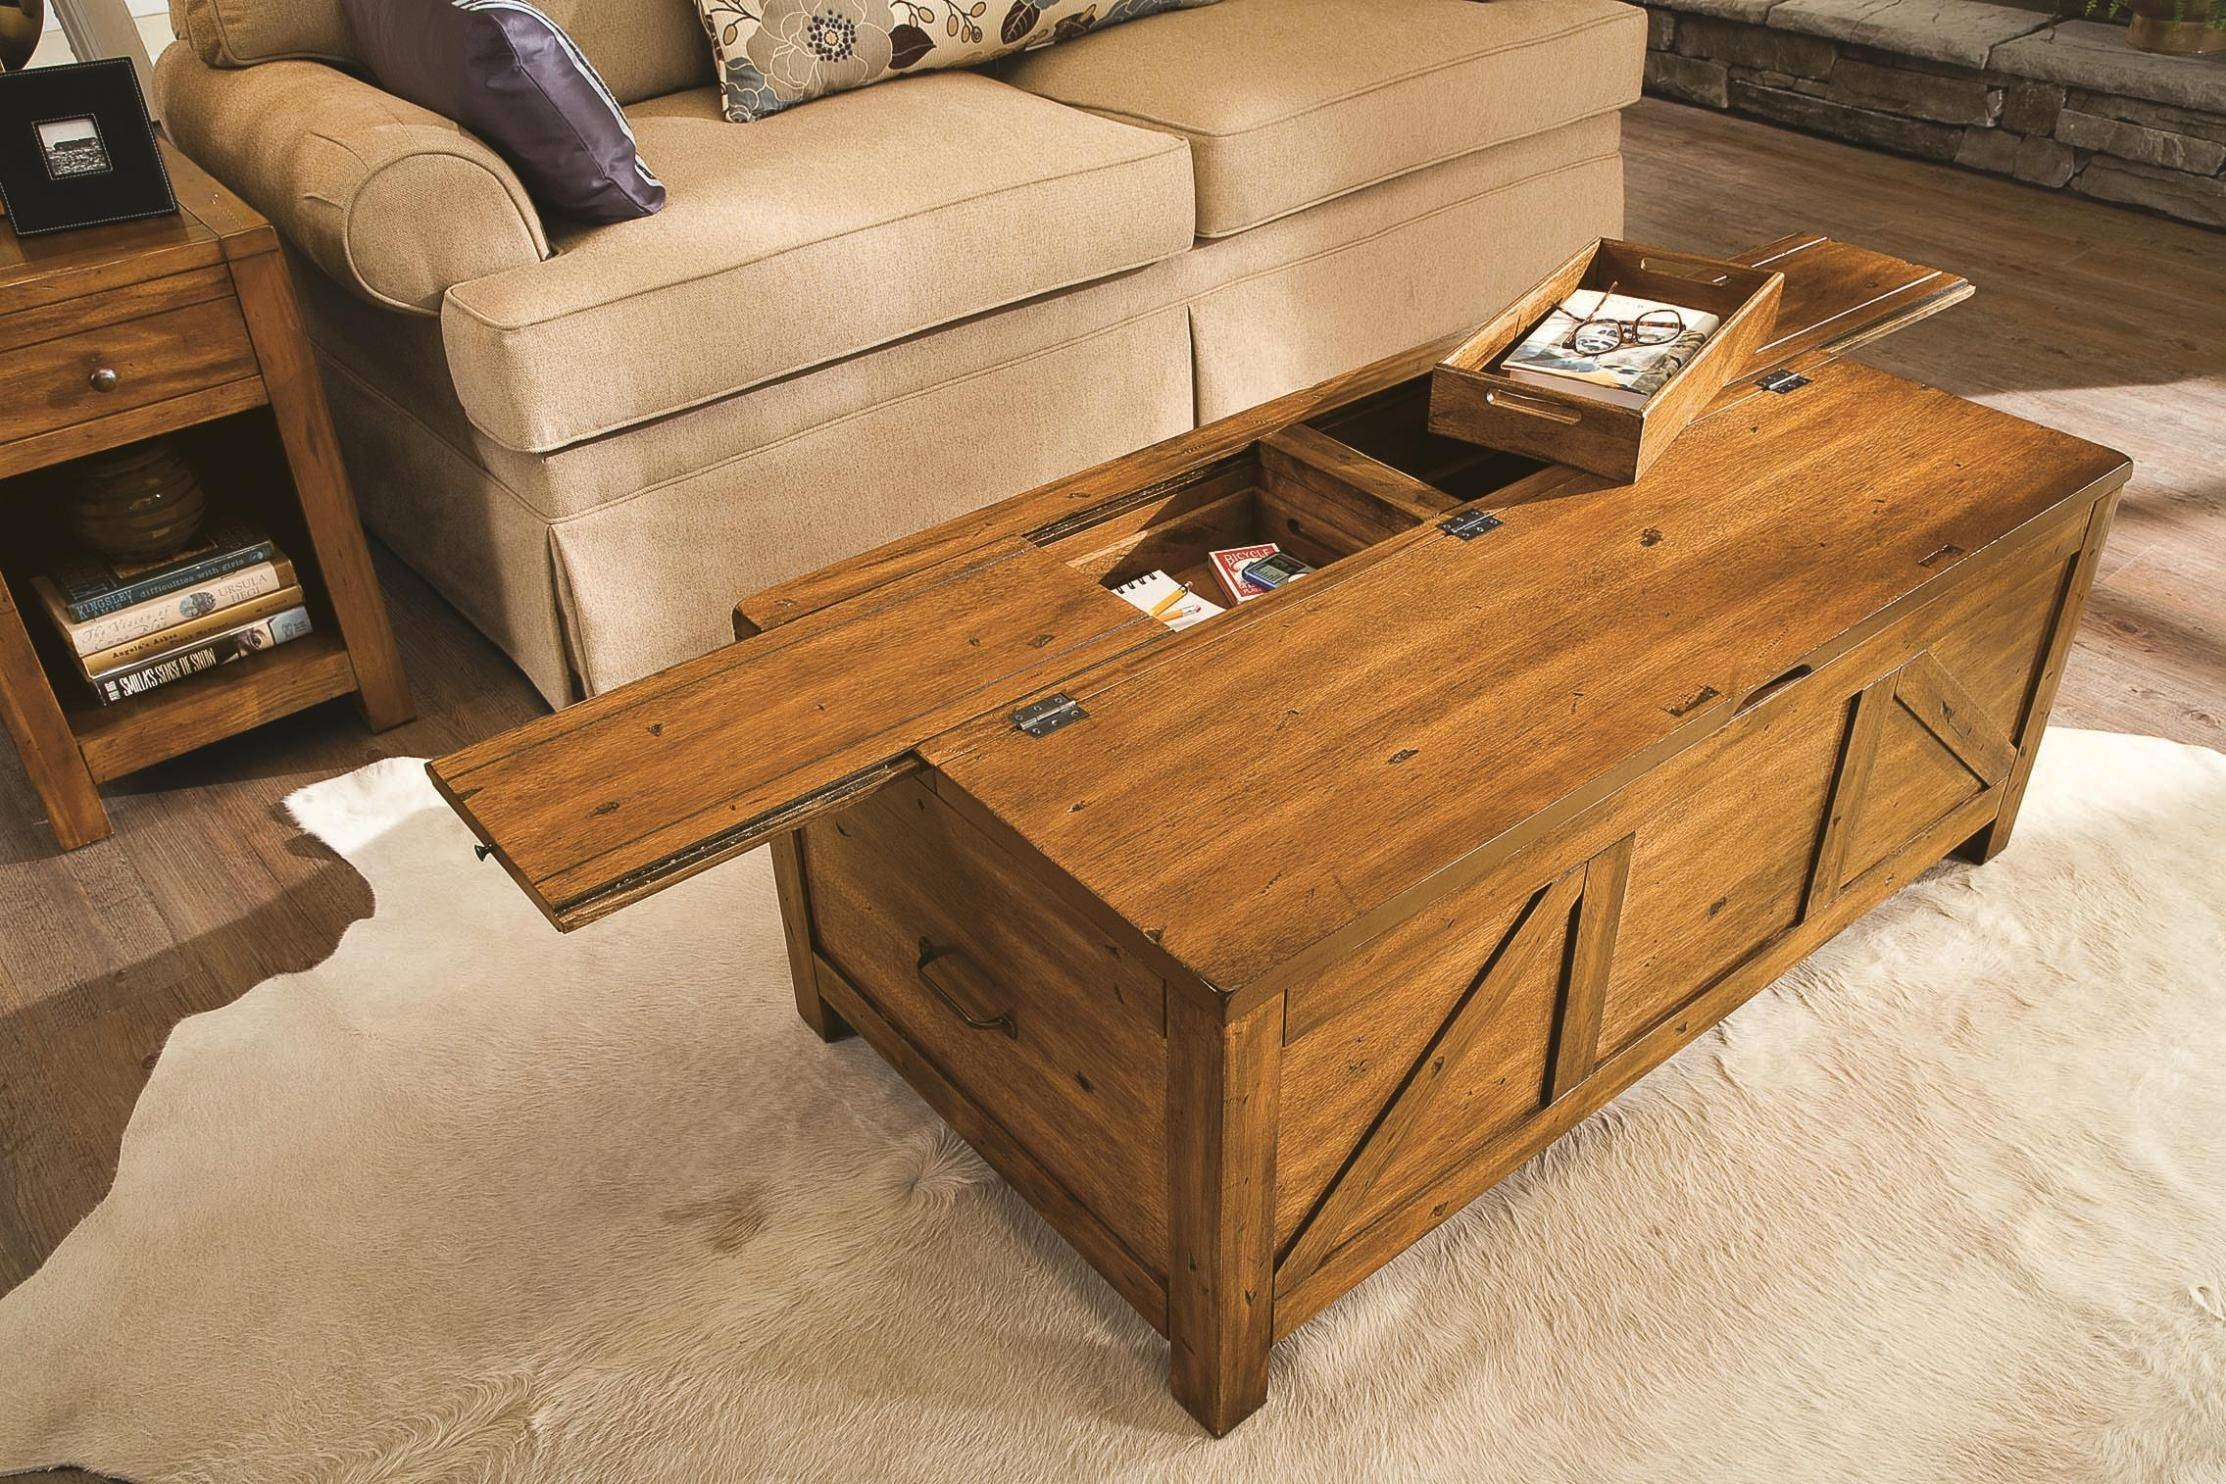 3 Best Materials For Your Coffee Table With Storage   Midcityeast  Pertaining To Blanket Box Coffee